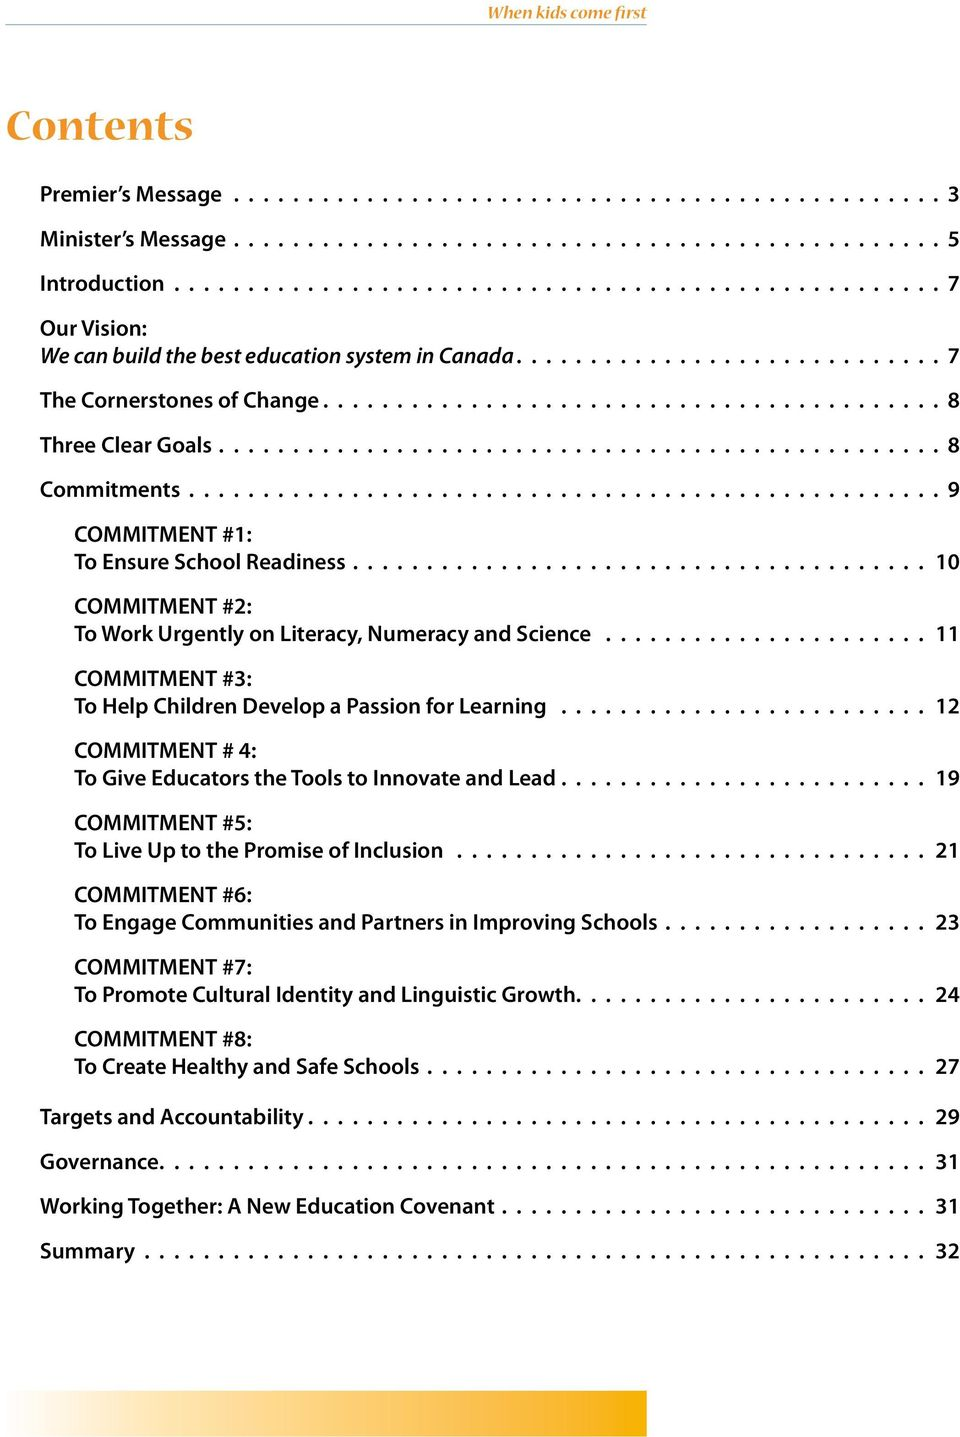 To Give Educators the Tools to Innovate and Lead 19 COMMITMENT #5: To Live Up to the Promise of Inclusion 21 COMMITMENT #6: To Engage Communities and Partners in Improving Schools 23 COMMITMENT #7: